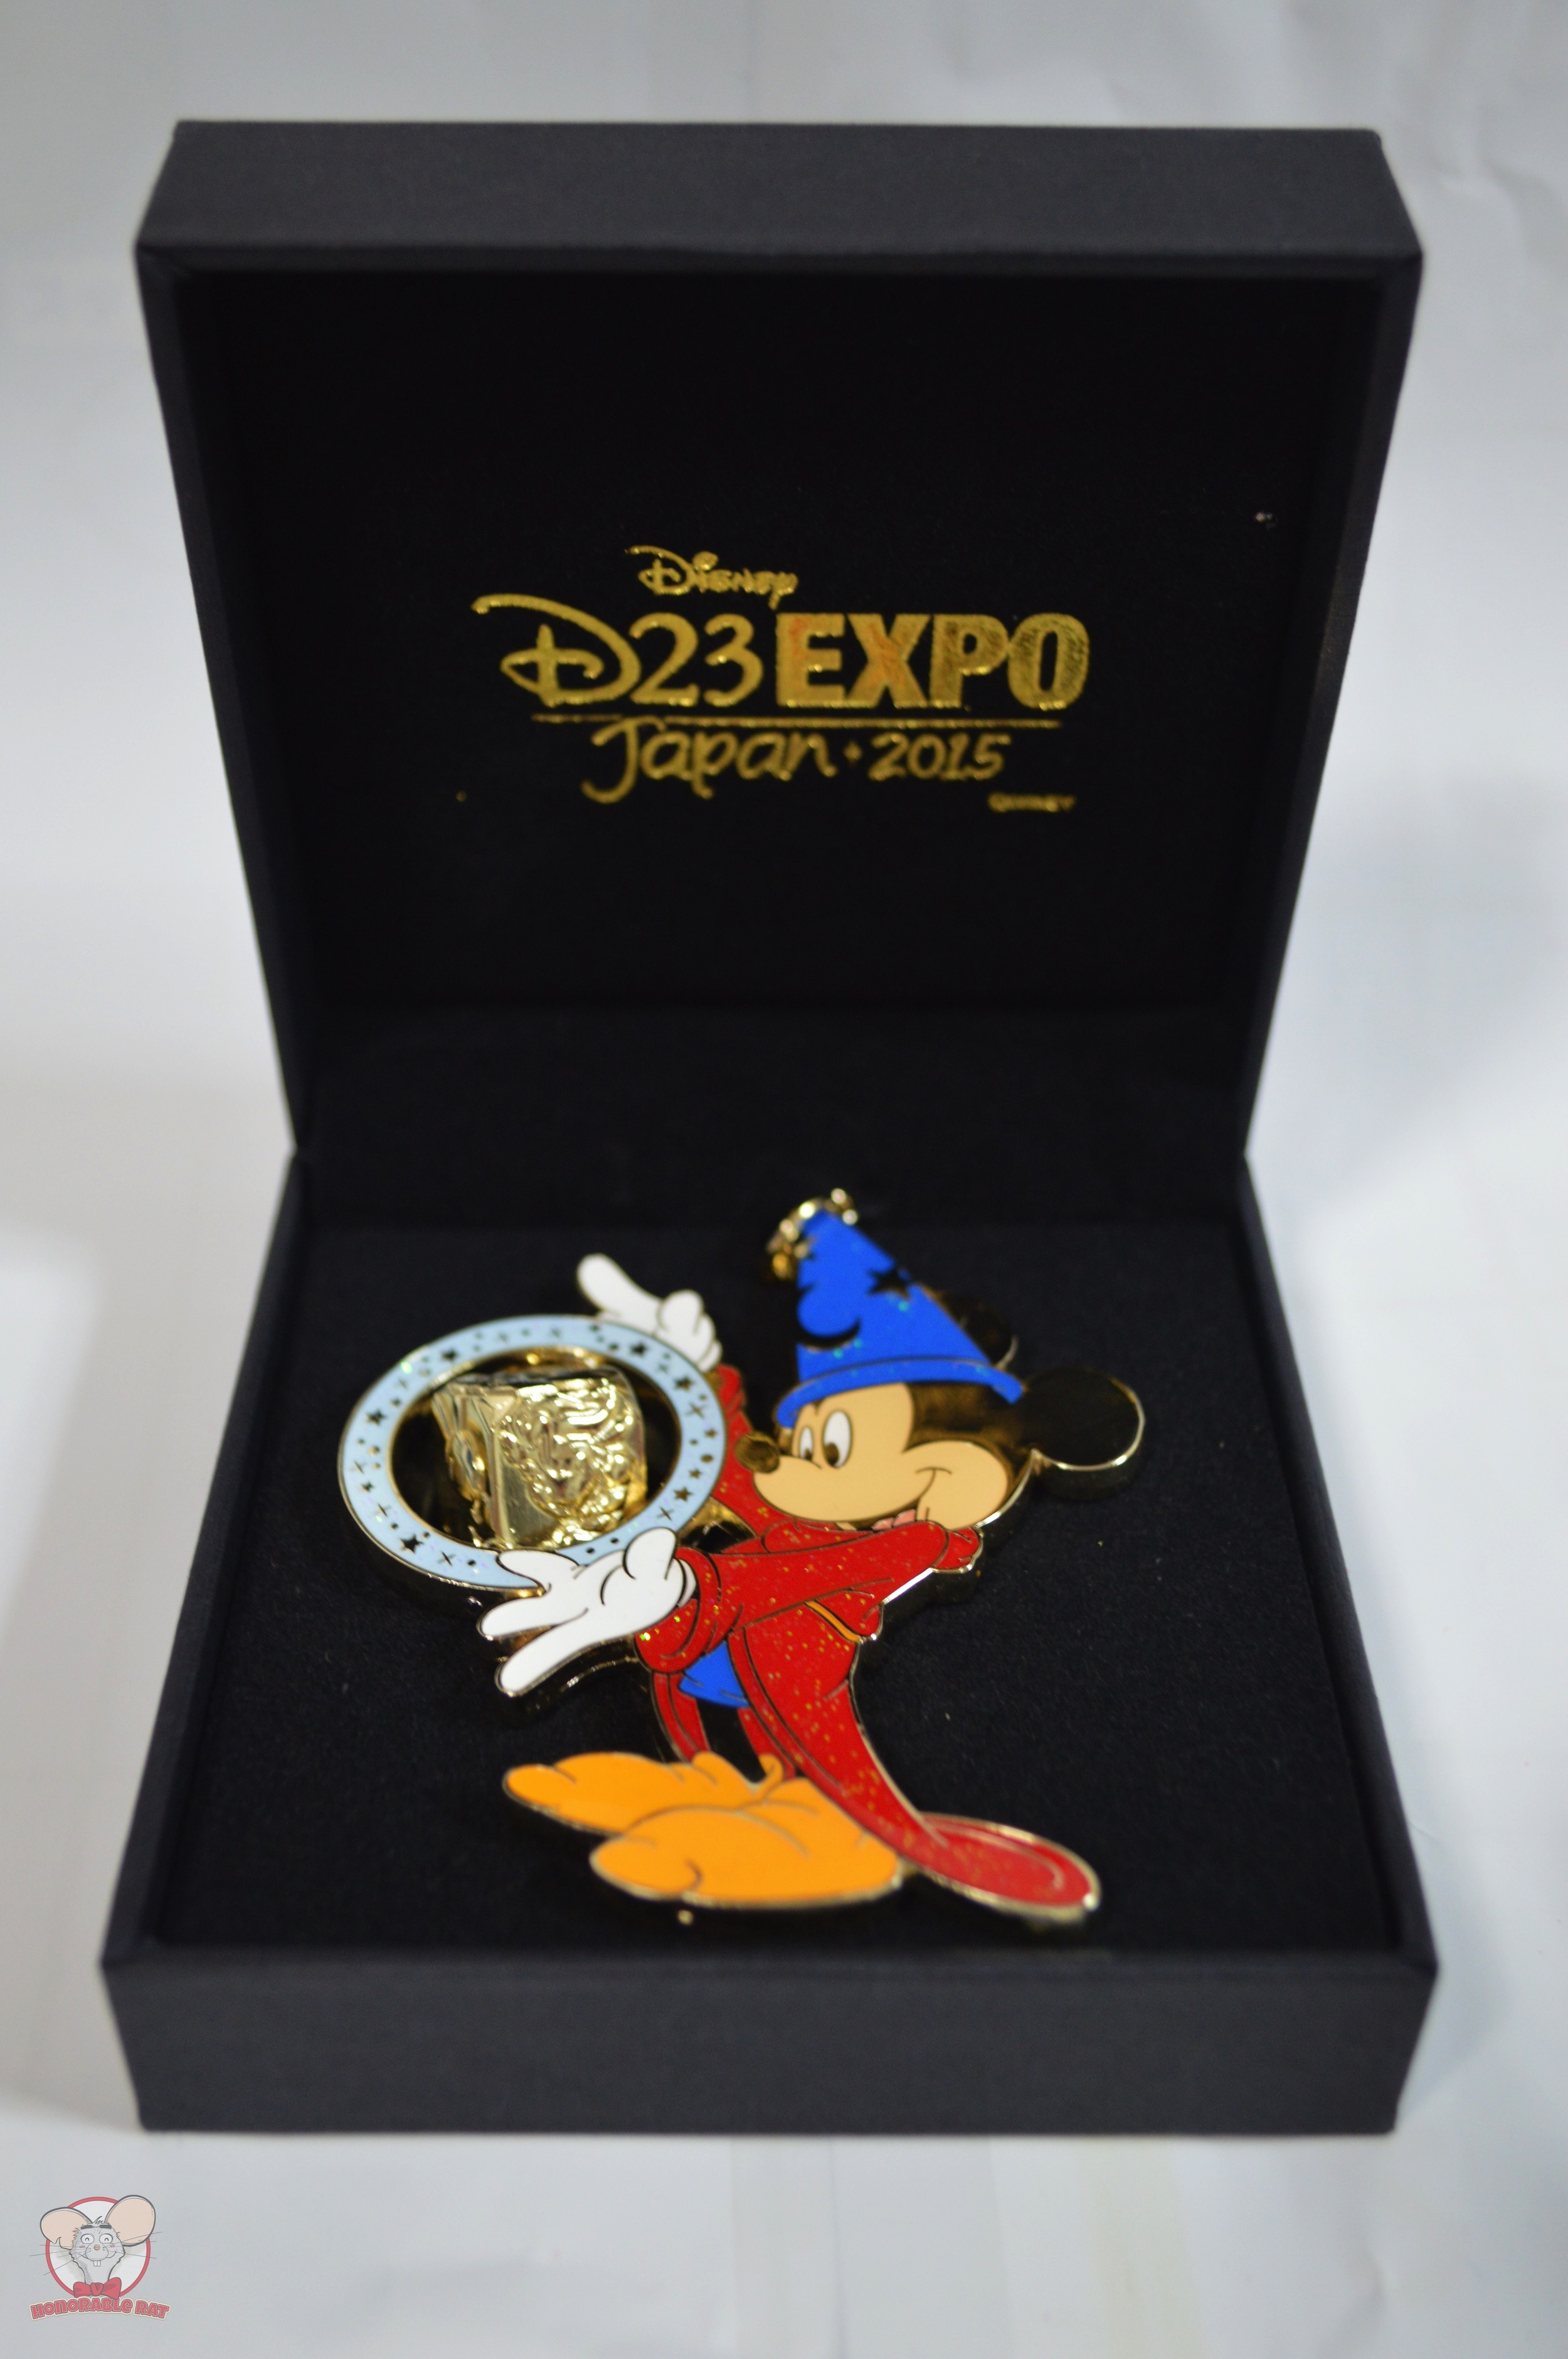 D23 Expo Japan 2015 Collectors Key Chain